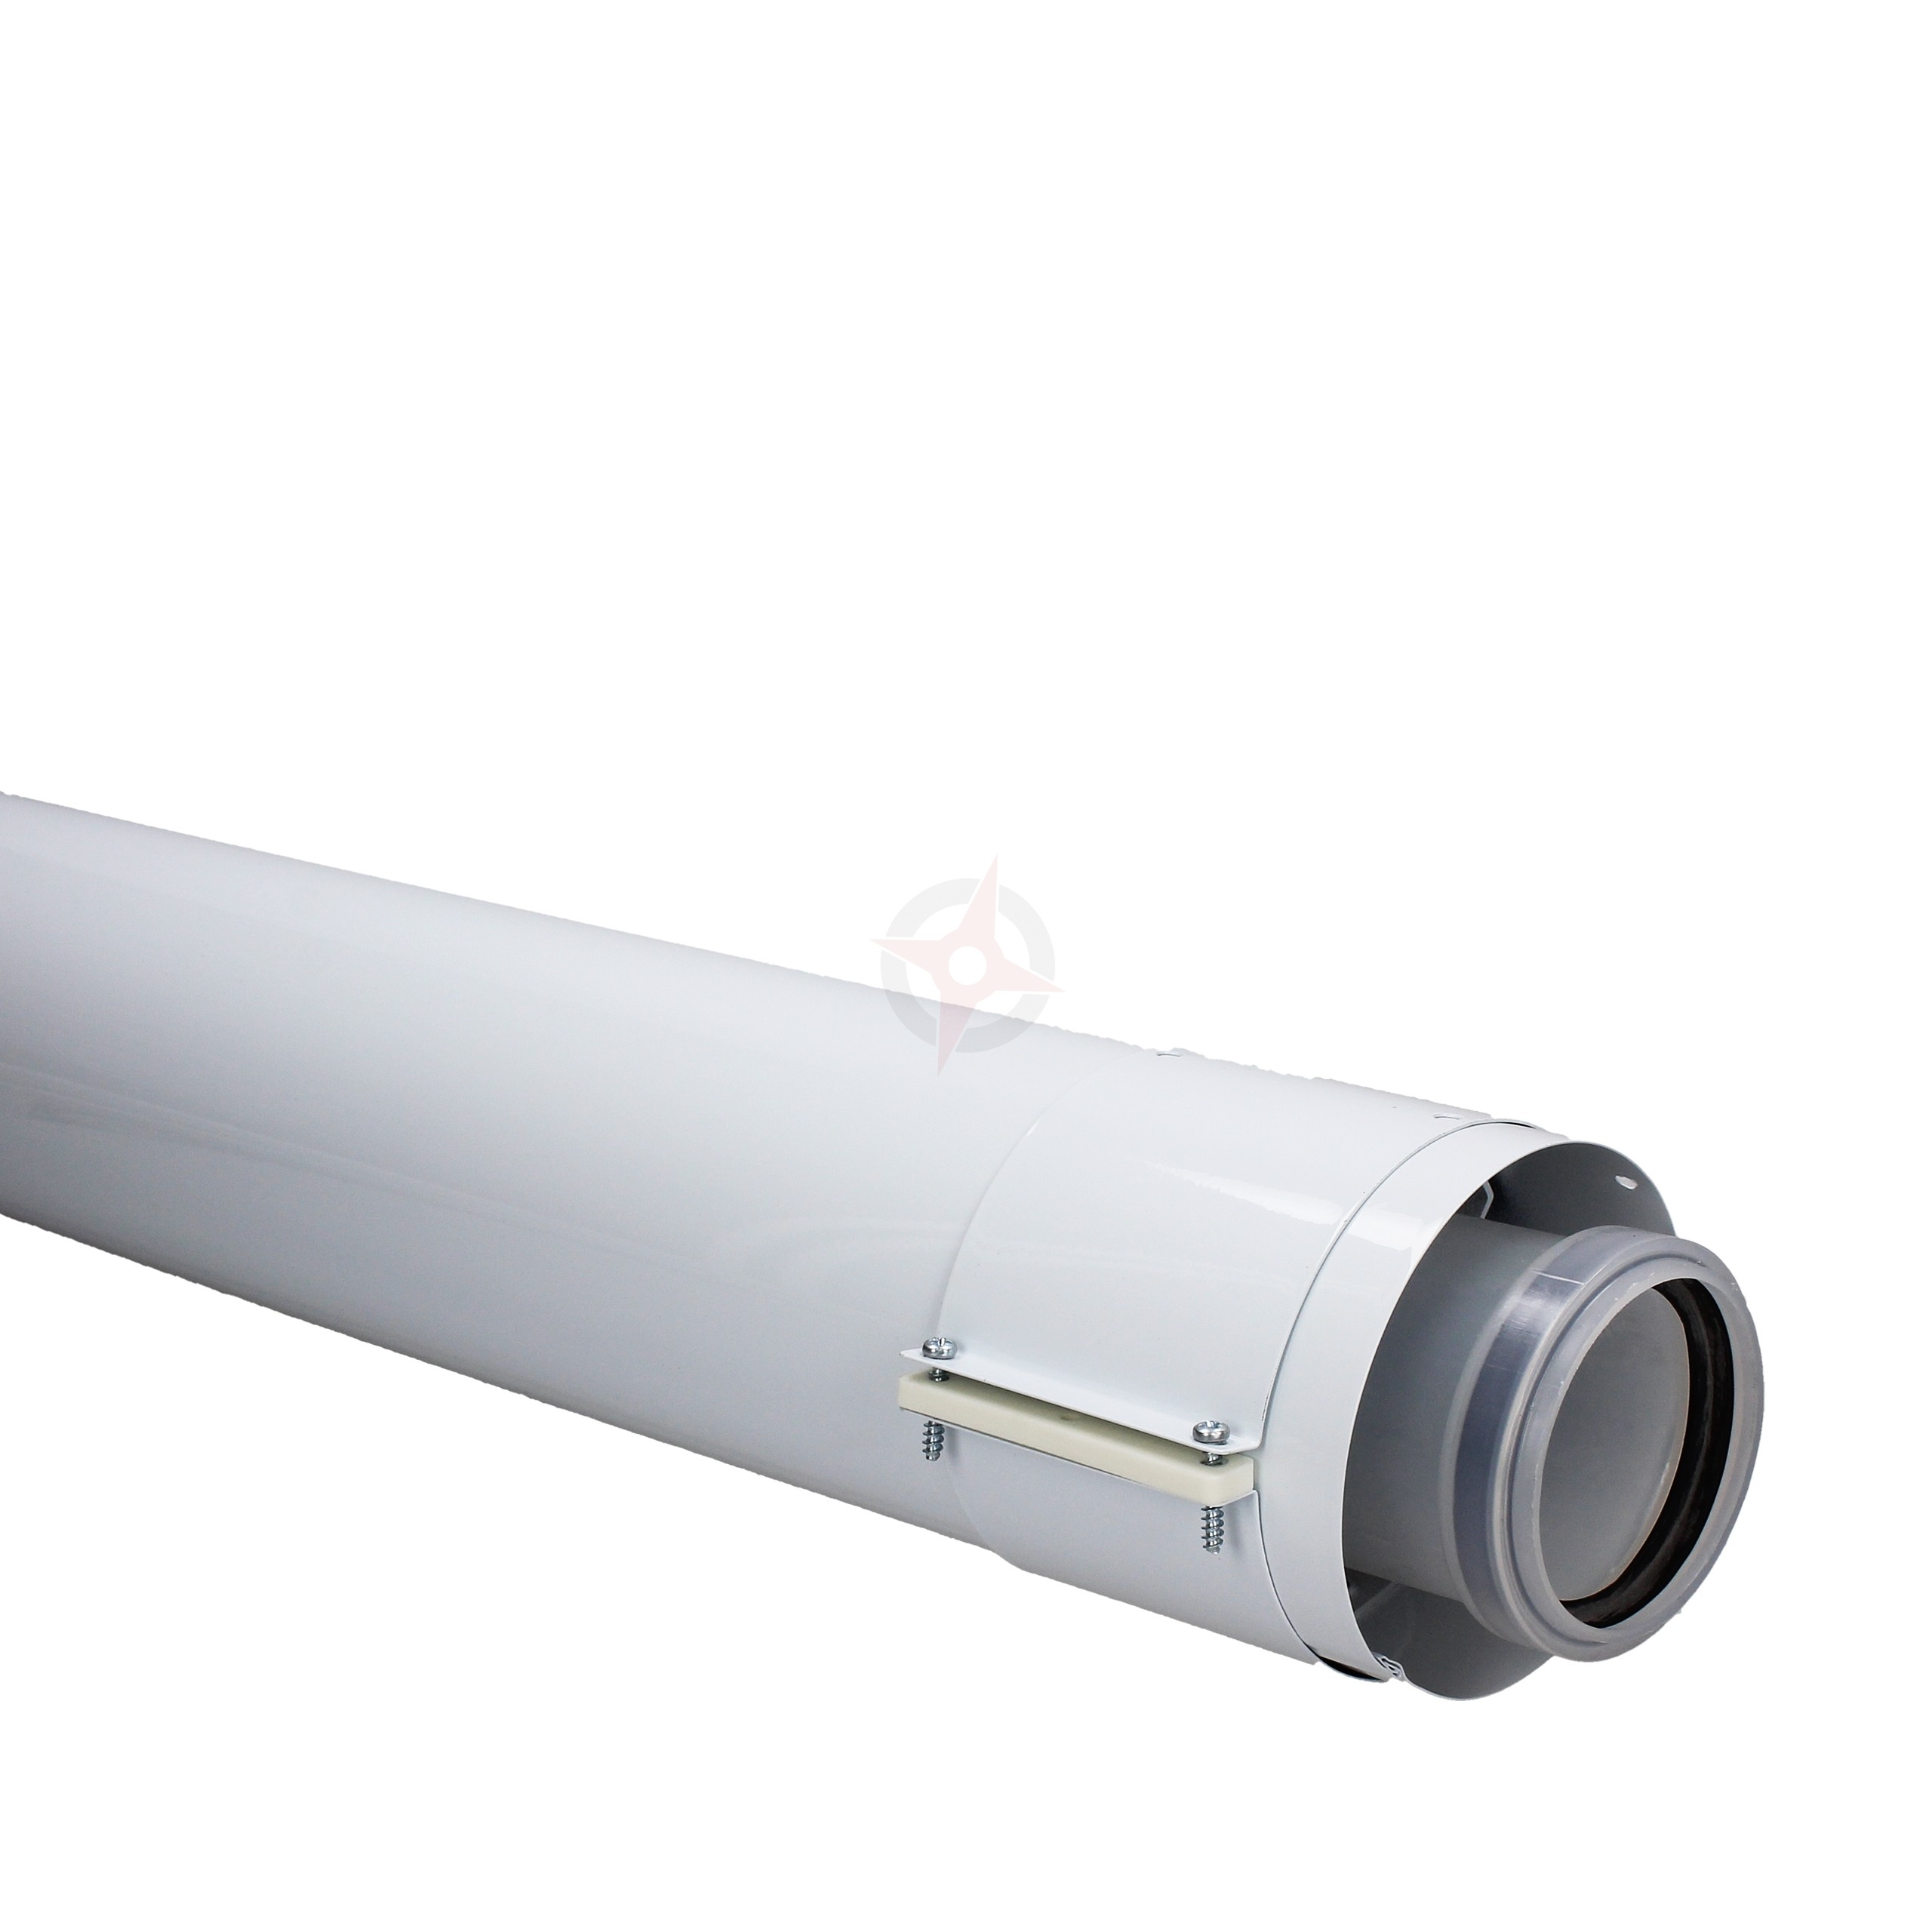 Glow-worm 500mm Flue Extension